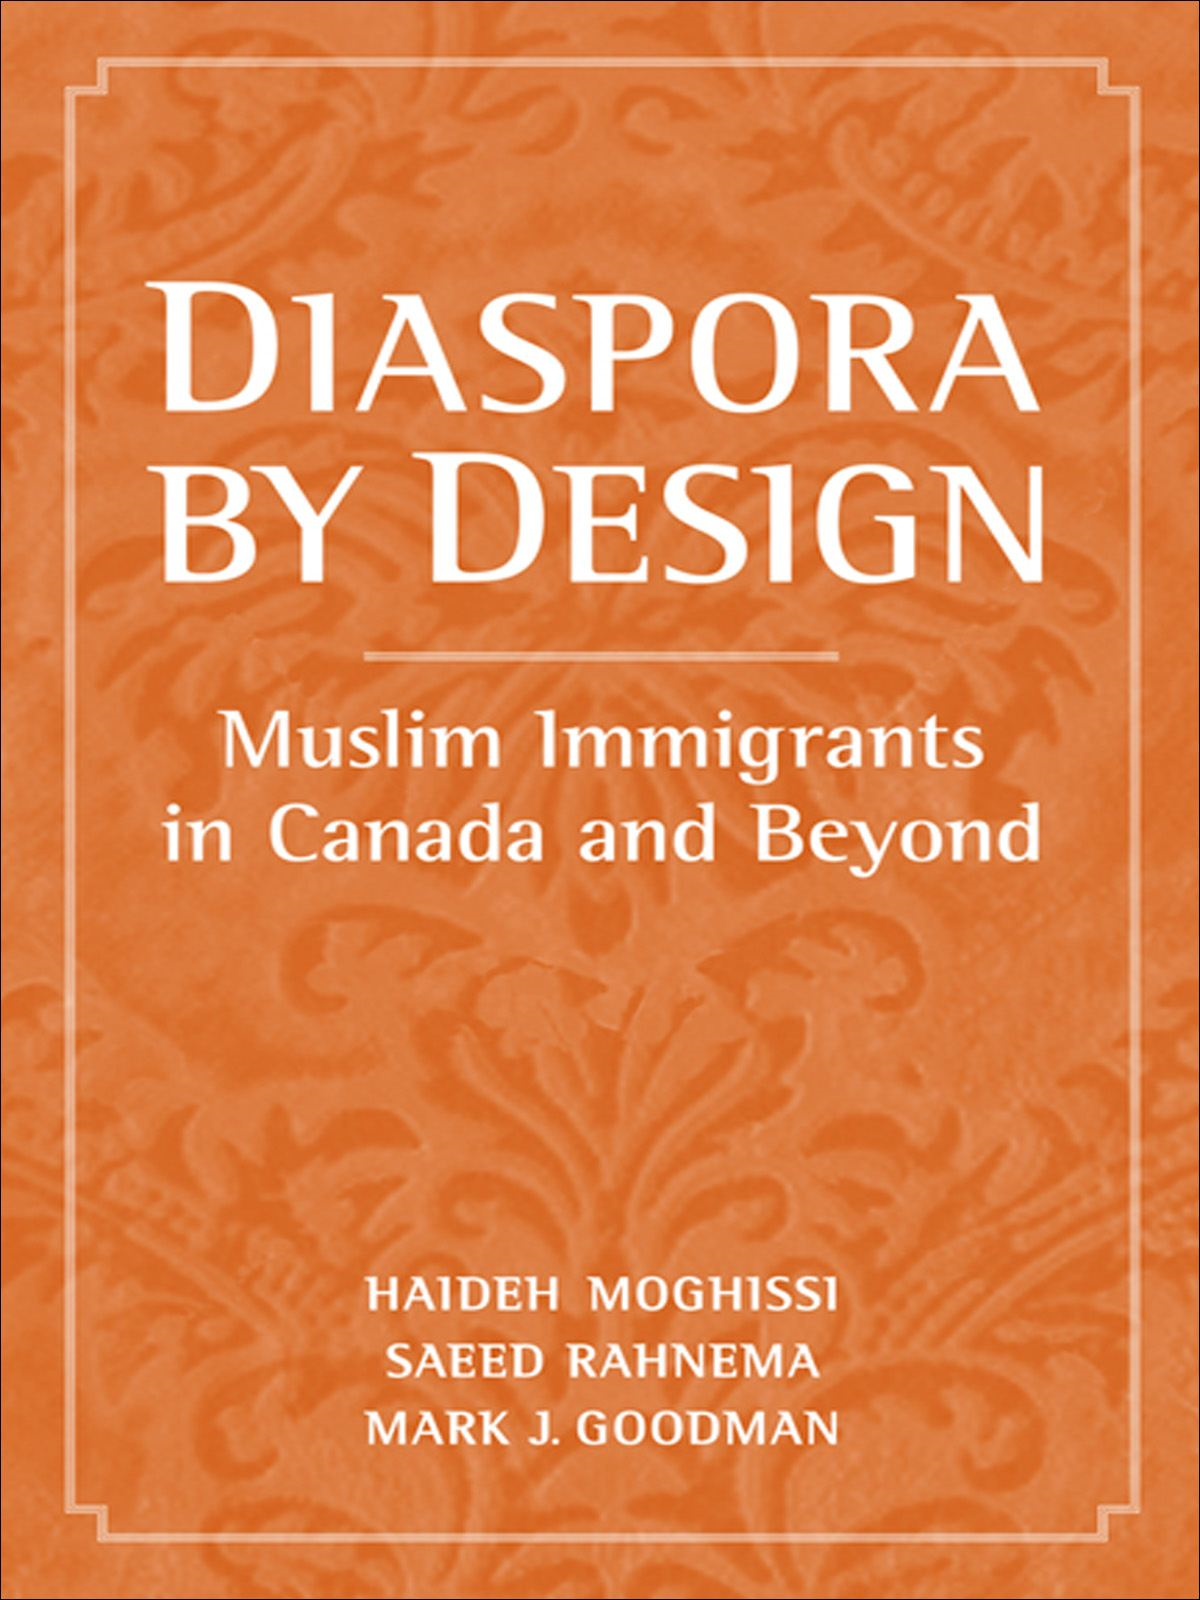 Diaspora by Design By: Haideh Moghissi,Mark  Goodman,Saeed Rahnema